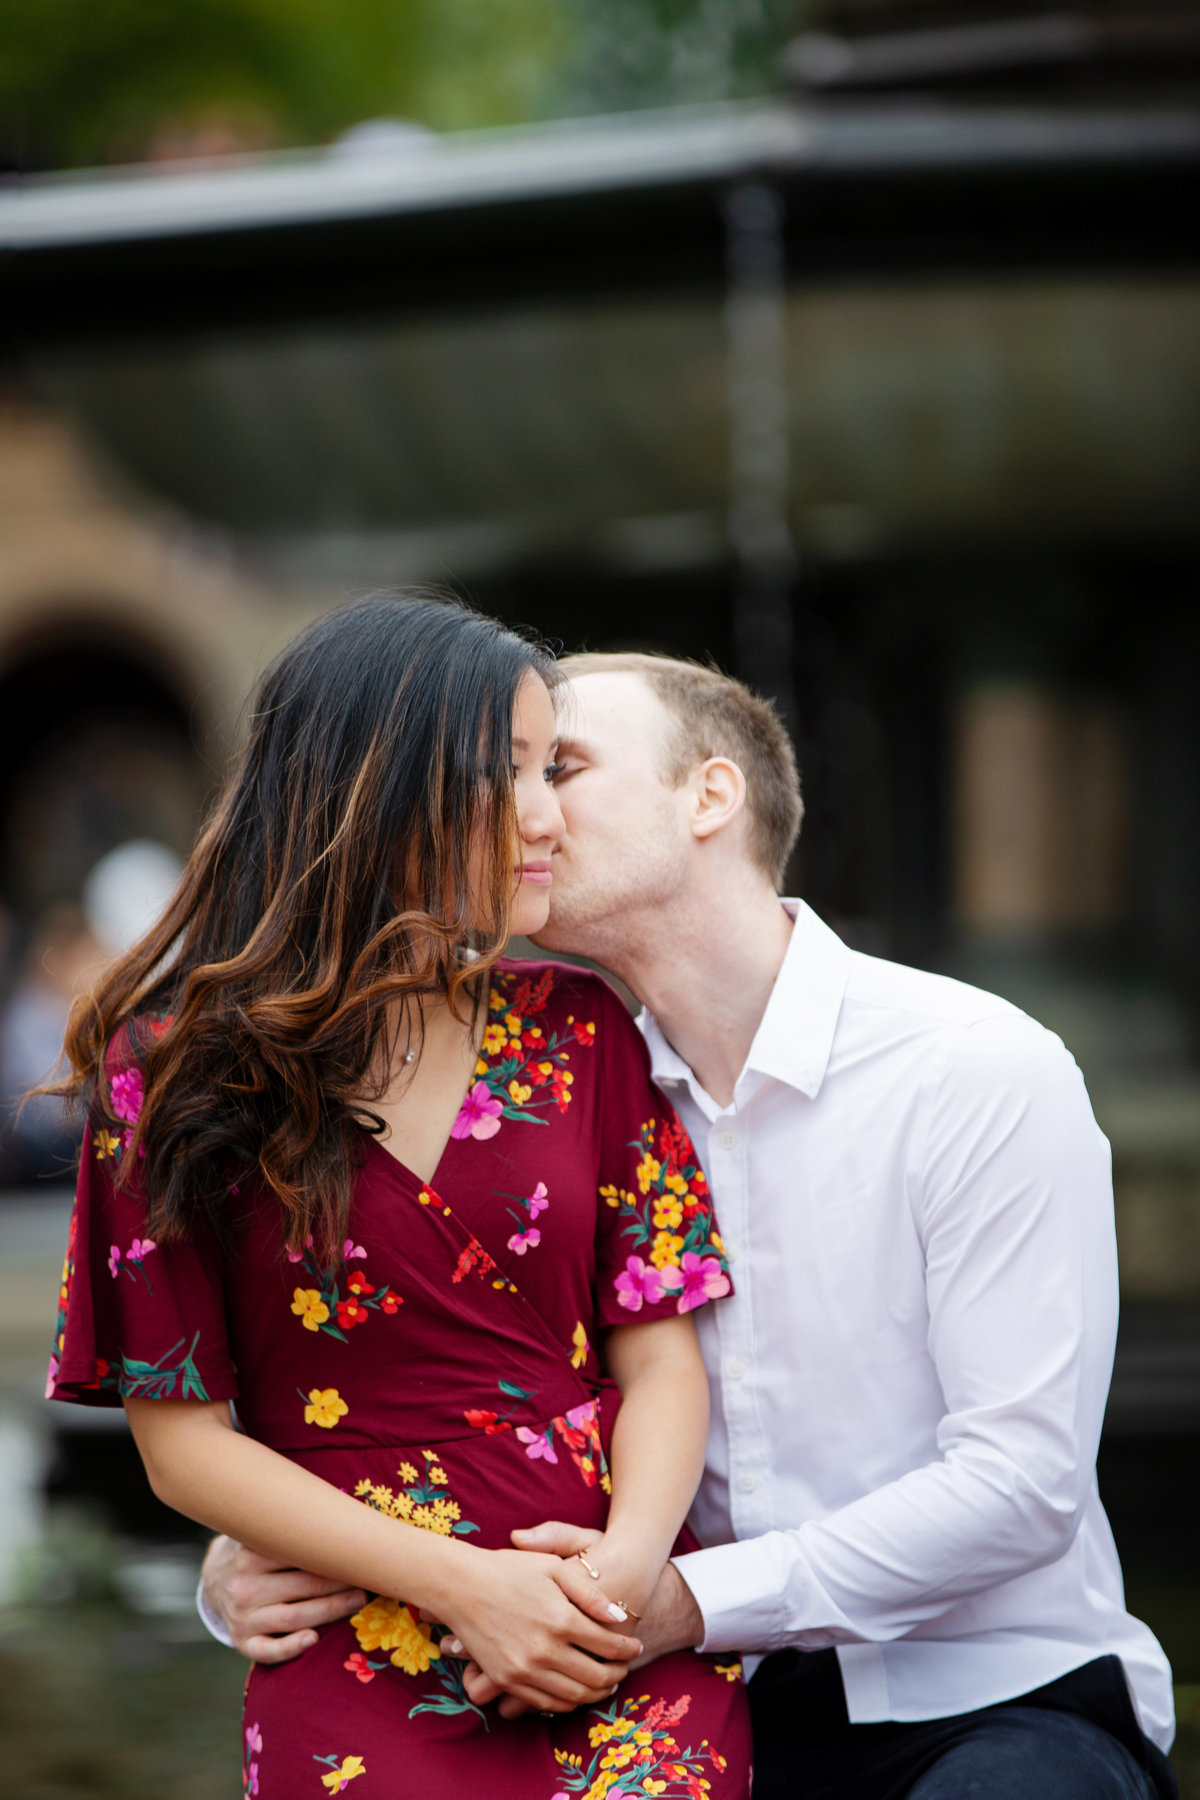 Central-Park-Engagement-Mariya-Stecklair-Photography-3